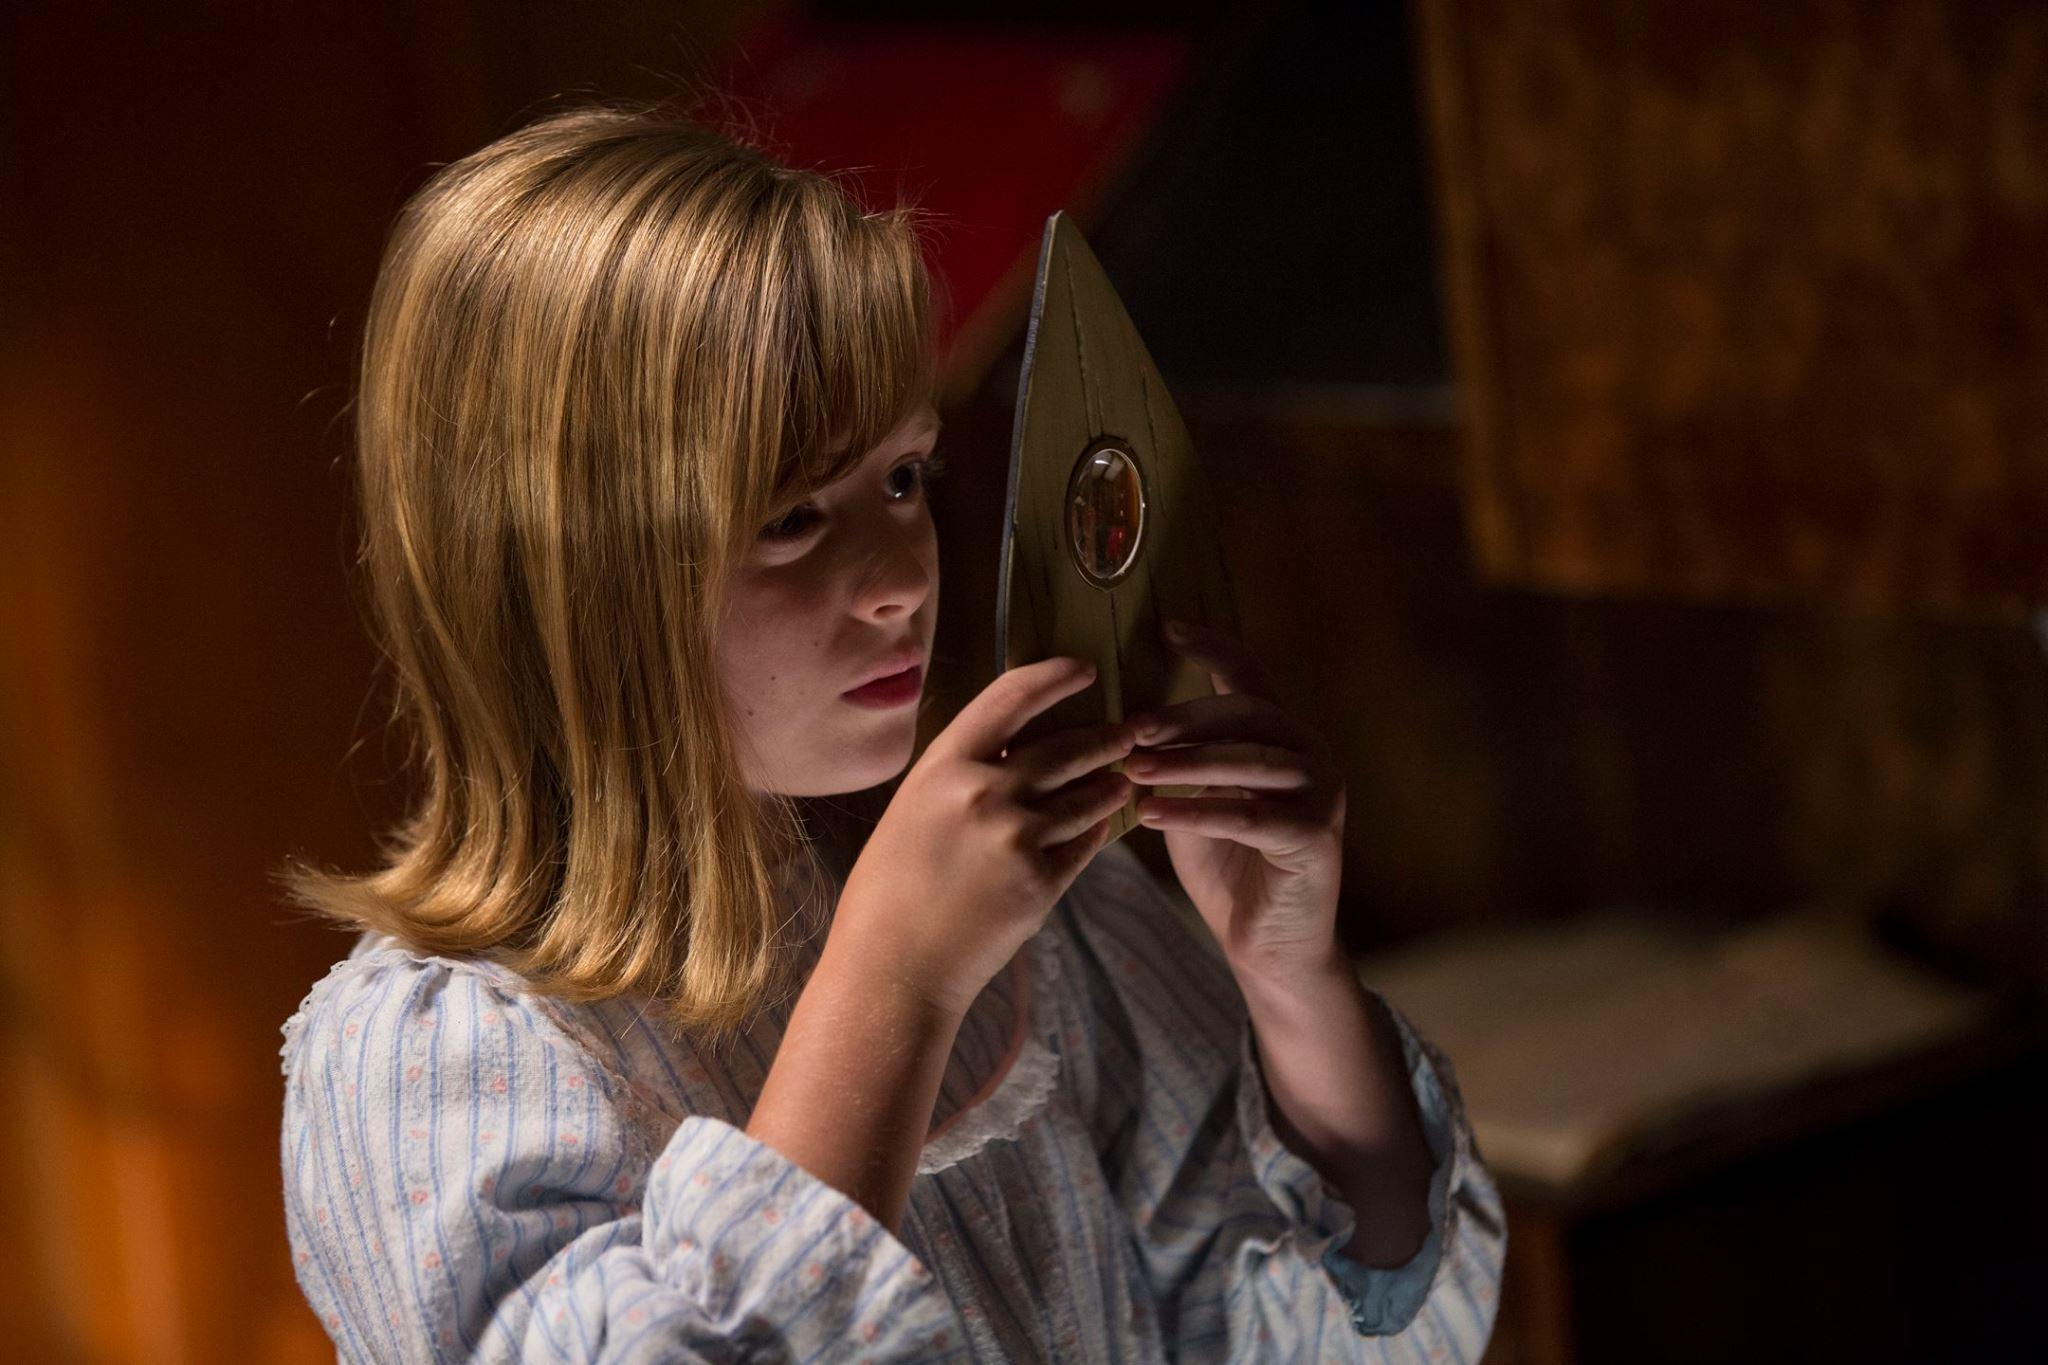 Do Ouija boards really work?